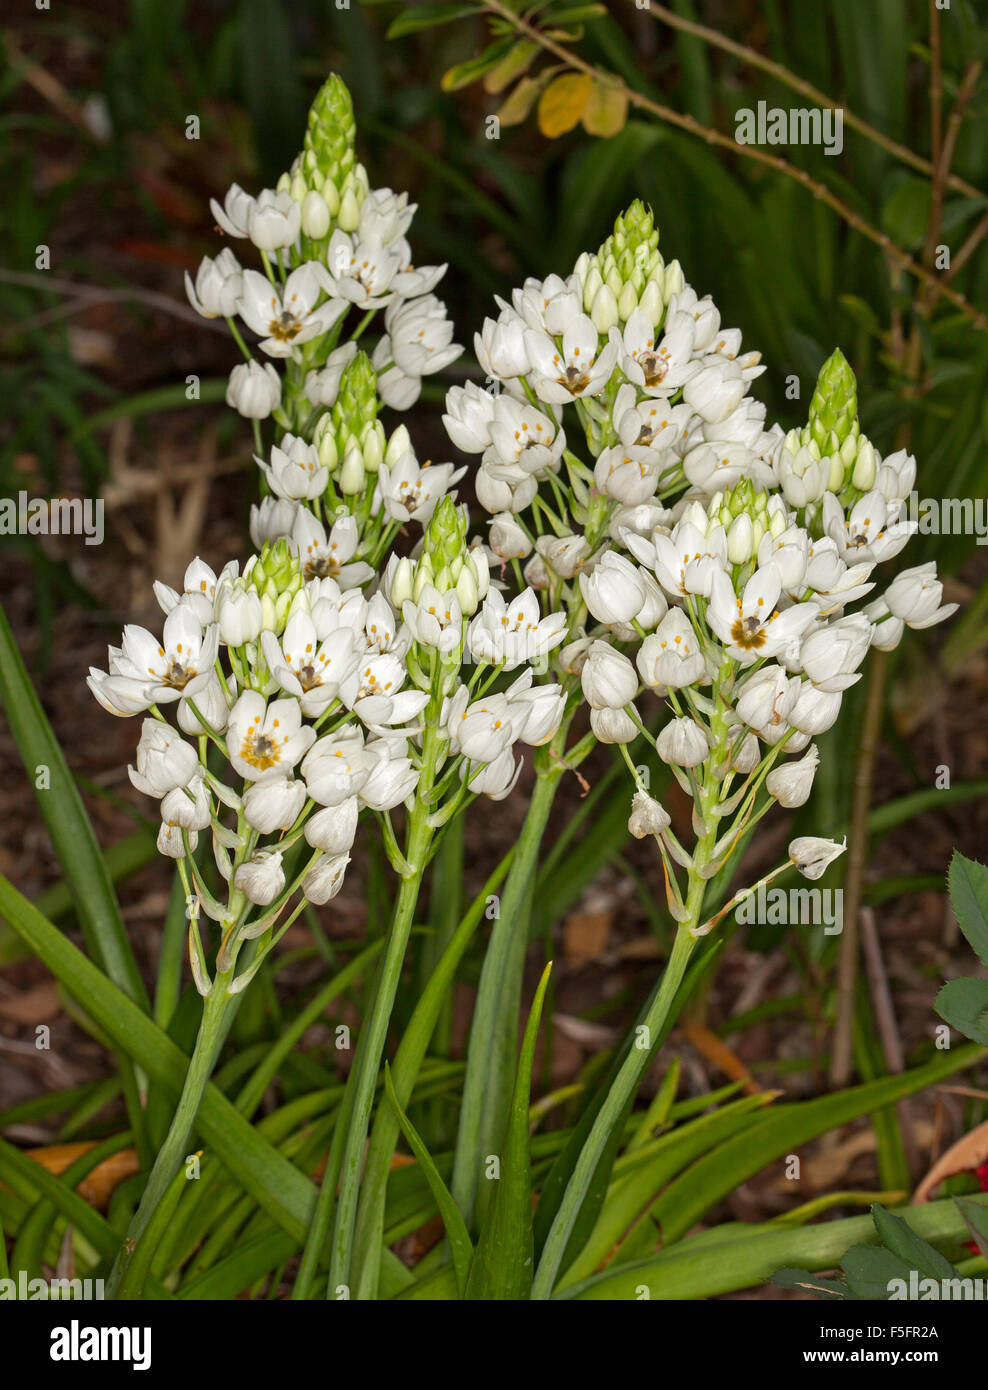 Cluster Of White Flowers And Emerald Green Leaves Of Ornithogalum